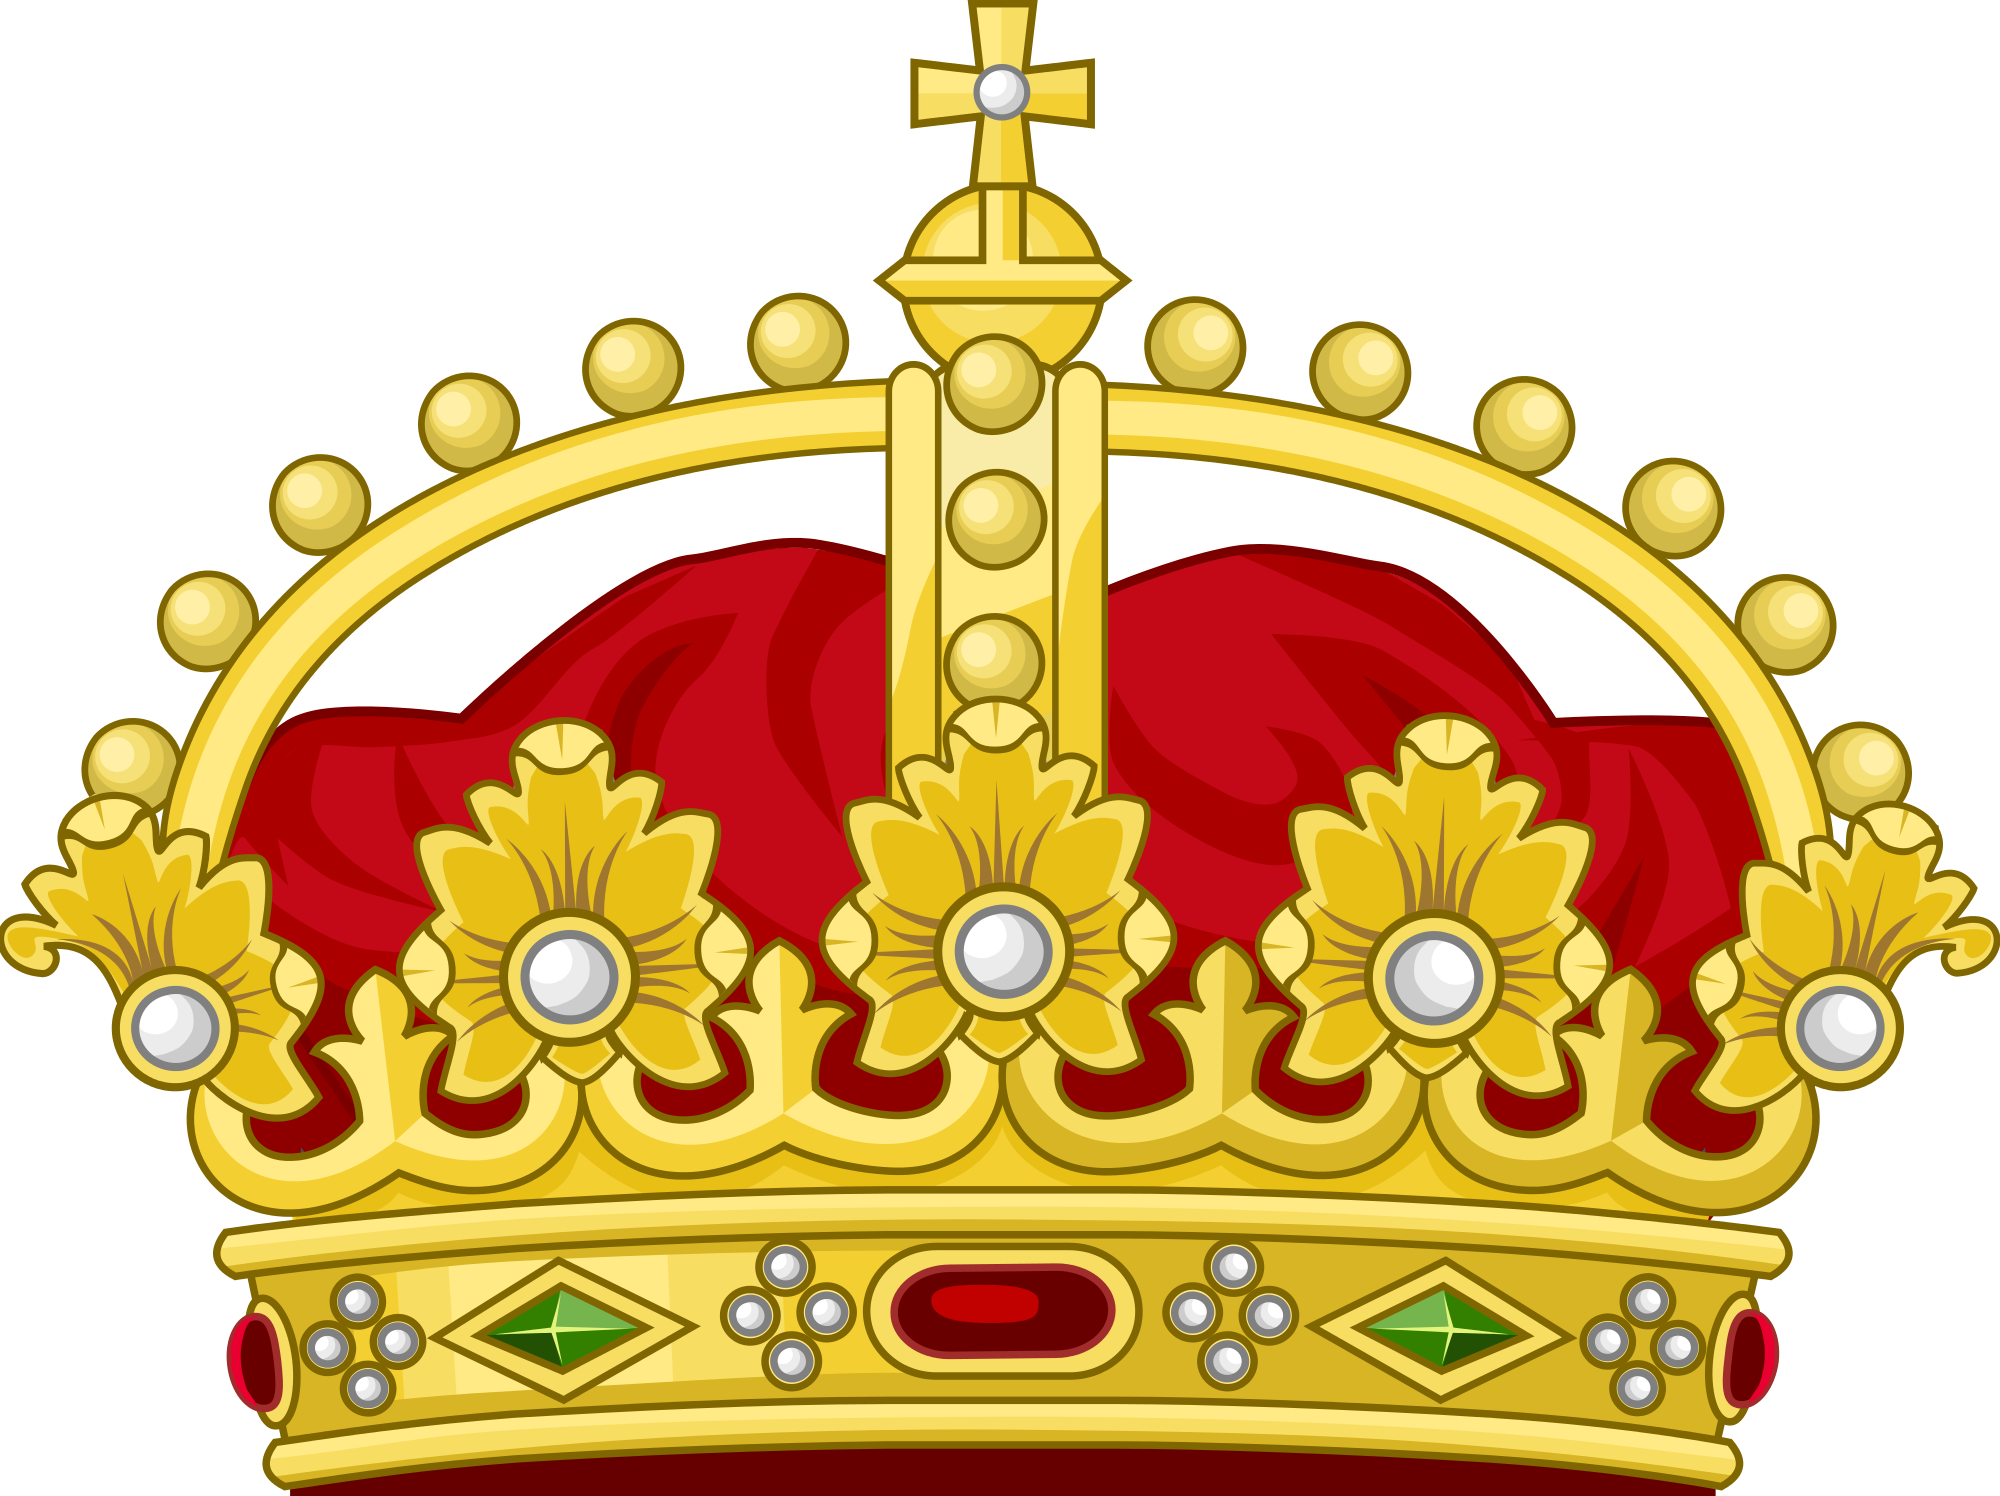 Crown Clipart Cartoon Crown Cartoon Transparent Free For Download On Webstockreview 2020 Learn how to draw cartoon crown pictures using these outlines or print just for coloring. crown clipart cartoon crown cartoon